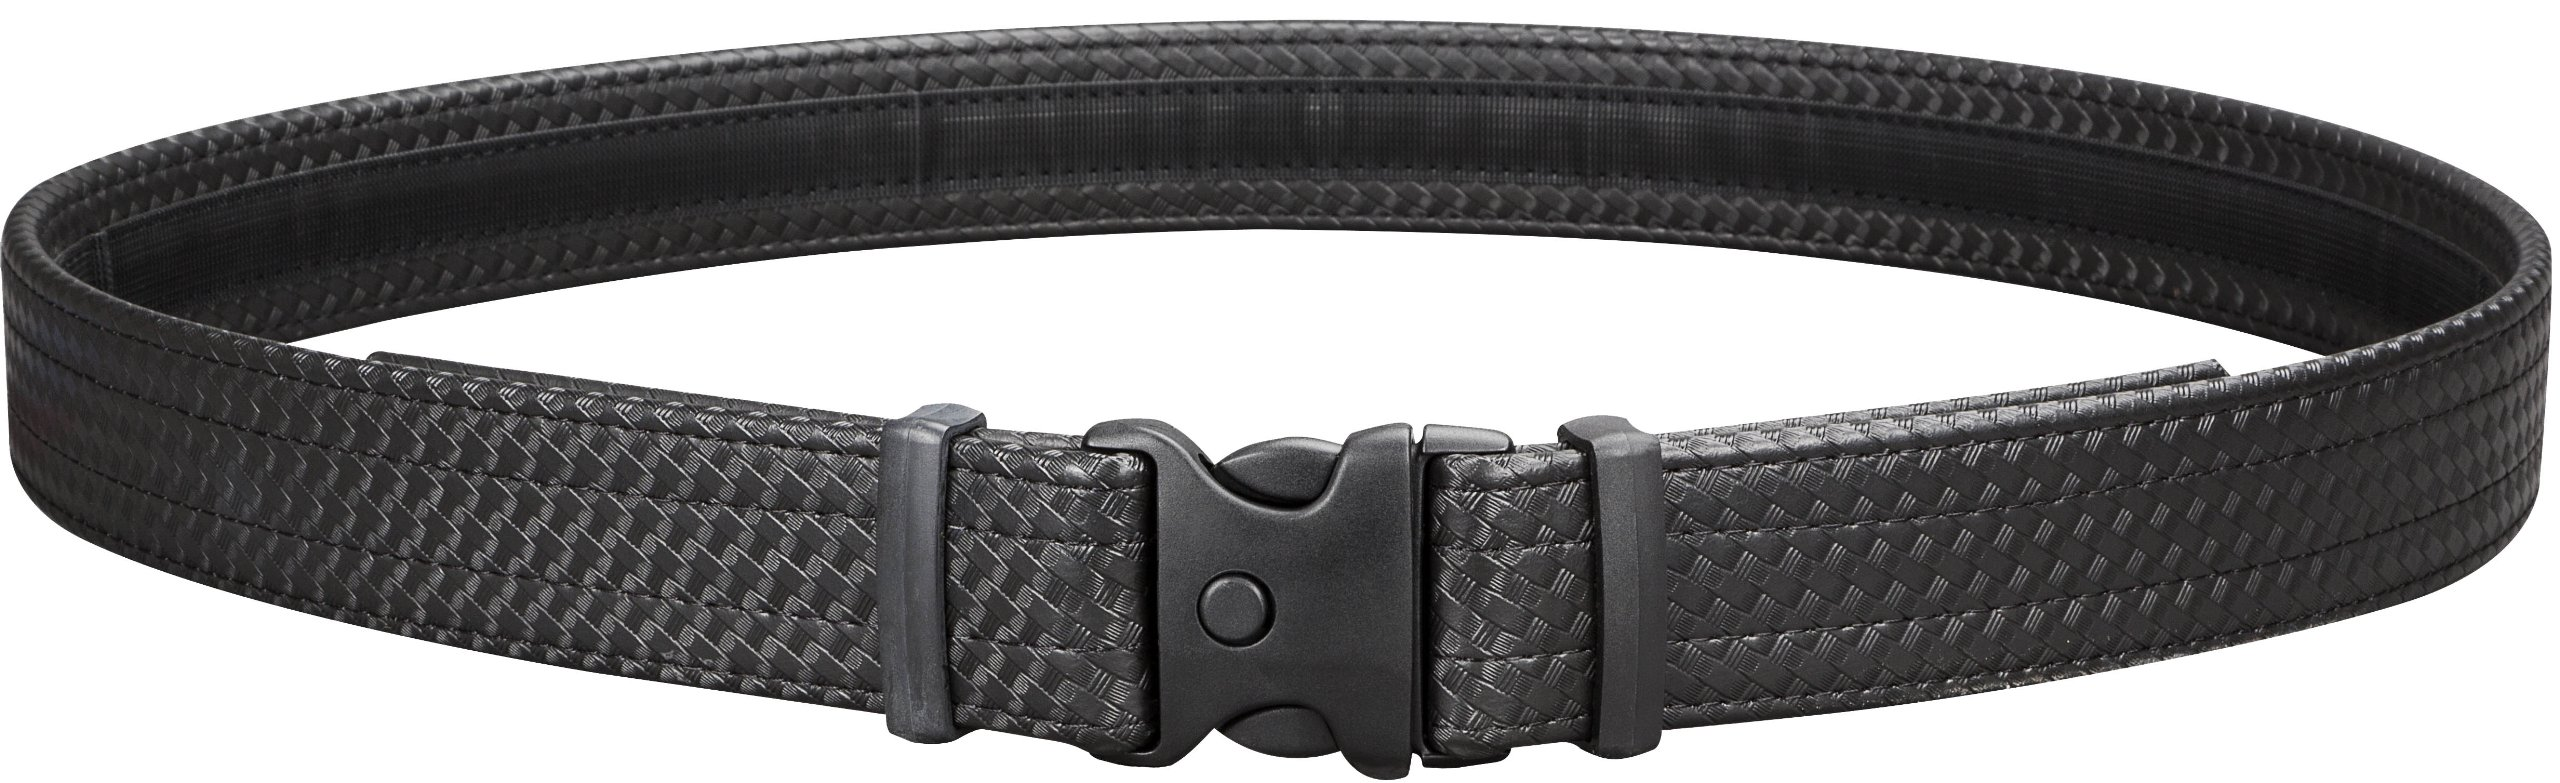 Uncle Mike's Law Enforcement Mirage Basketweave Ultra Duty Belt with Hook and Loop Lining (X-Large, Black) by Uncle Mike's